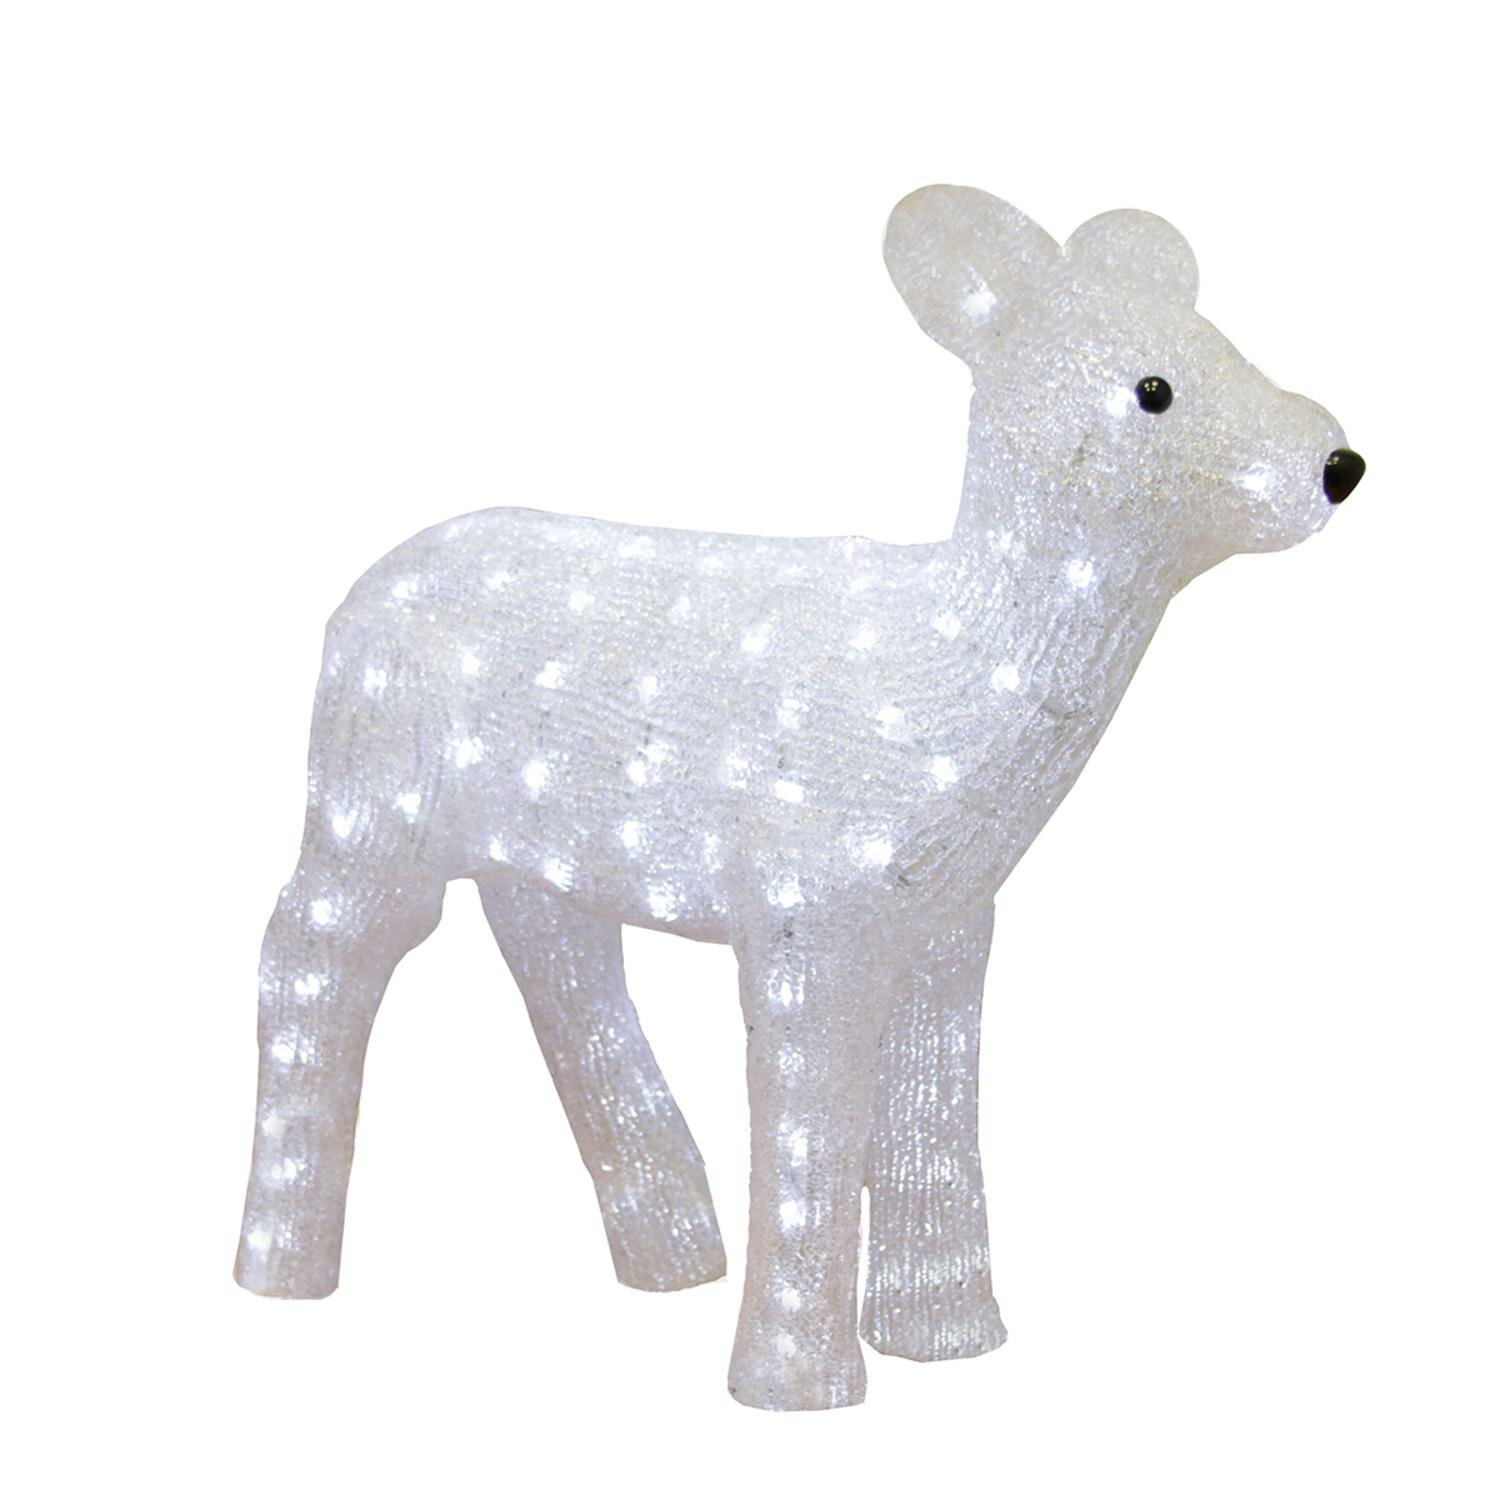 Northlight Pre Lit Commercial Grade Acrylic Baby Reindeer Christmas Lighted Display Wayfair